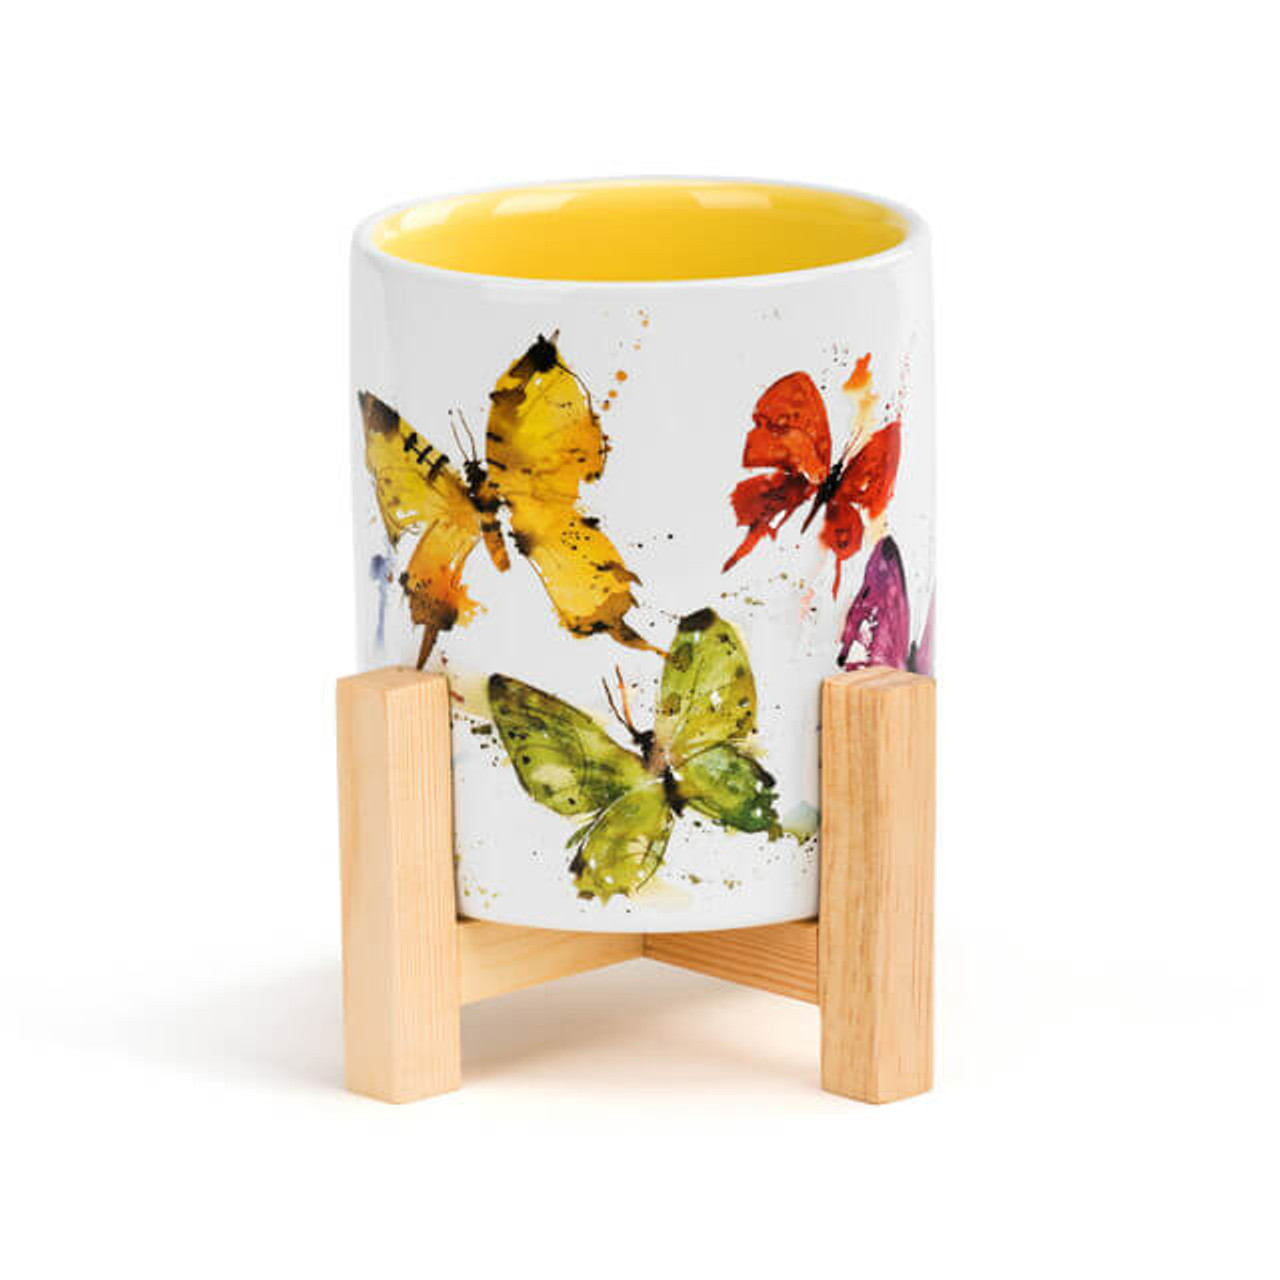 """Oregon artist Dean Crouser's vibrant watercolor works bring the beauty of nature onto this charming stonware mini planter. Features a burst of color with the painting of a flock of butterflies. Perched inside a bamboo base, this décor has the latest look for the inspired home. Makes a great housewarming gift as it brings the wonder of nature into any home and provides a useful function. 3.5"""" w x 6.5"""" t; holds 14 ounces and features a yellow interior."""